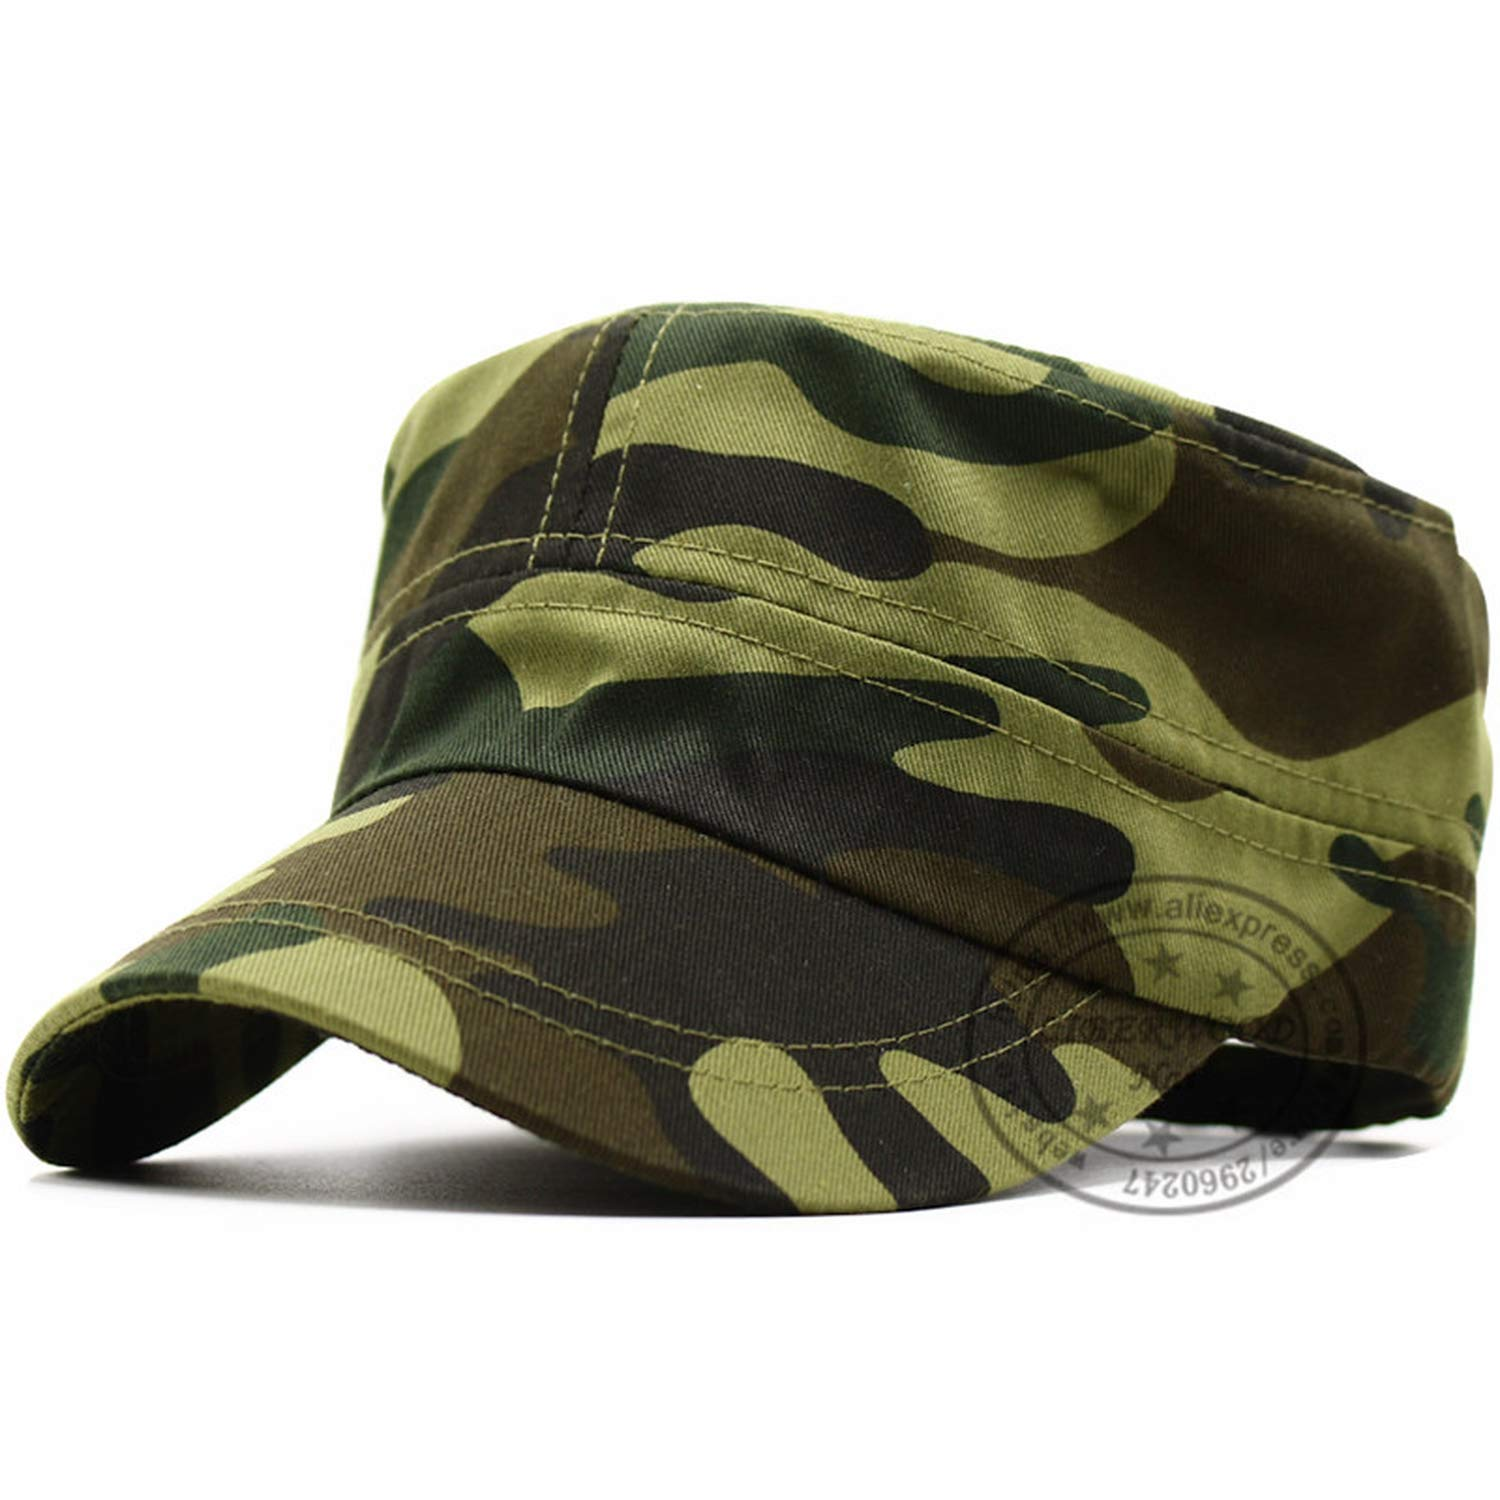 New Patrol Castro Camo Cap Casquette Blue Camouflage Hats Men Radar Cap Army Top Cap Hunting Cadet Hats at Amazon Womens Clothing store: